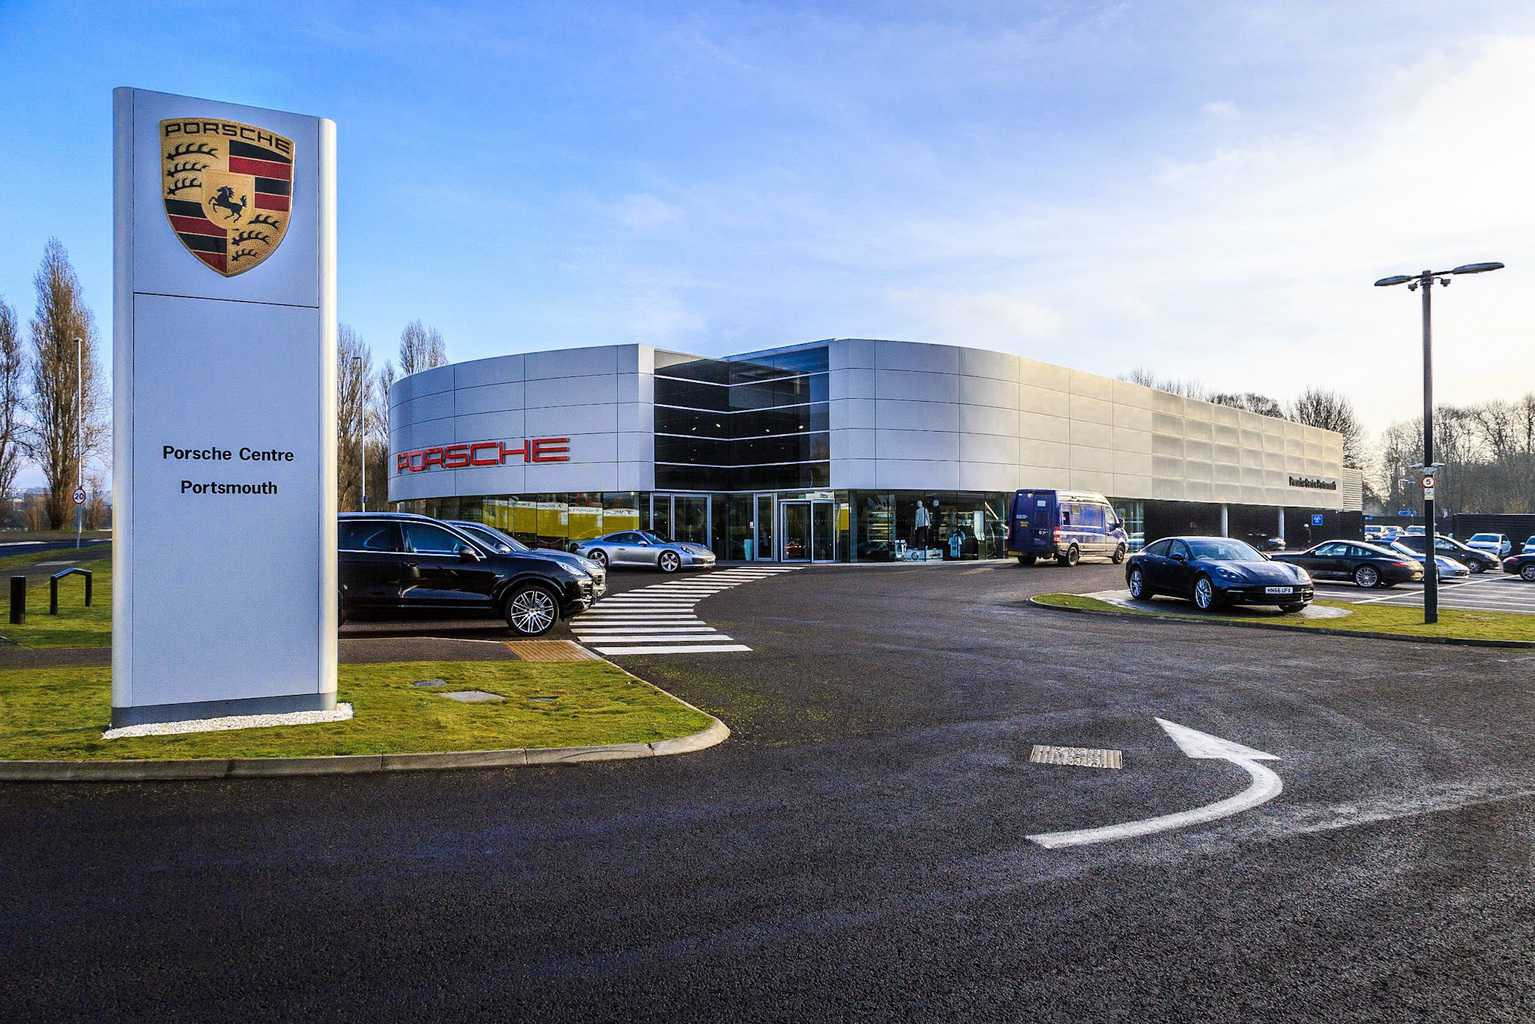 Porsche Portsmouth by commercial architectural photographer Rick McEvoy